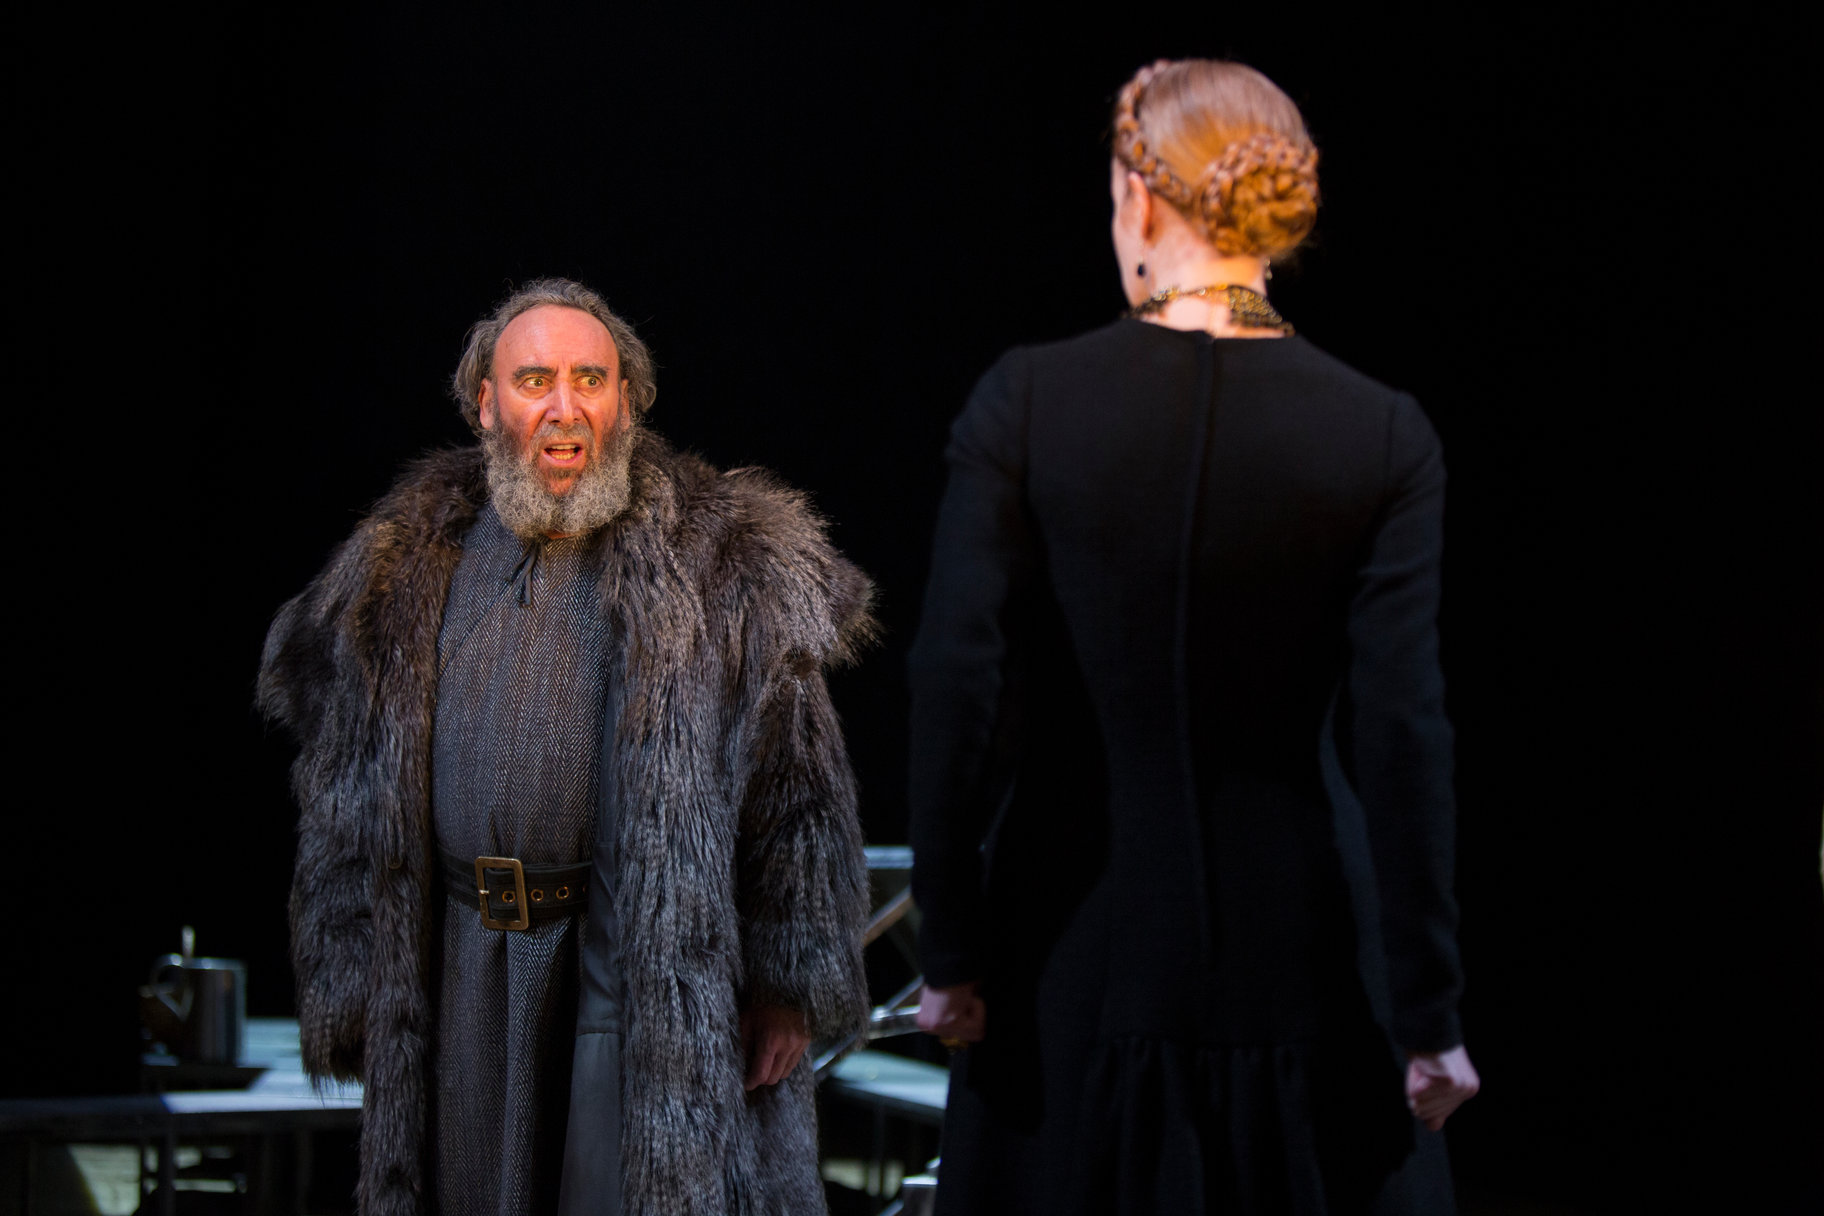 A man in furs talks angrily at a woman in a black dress.